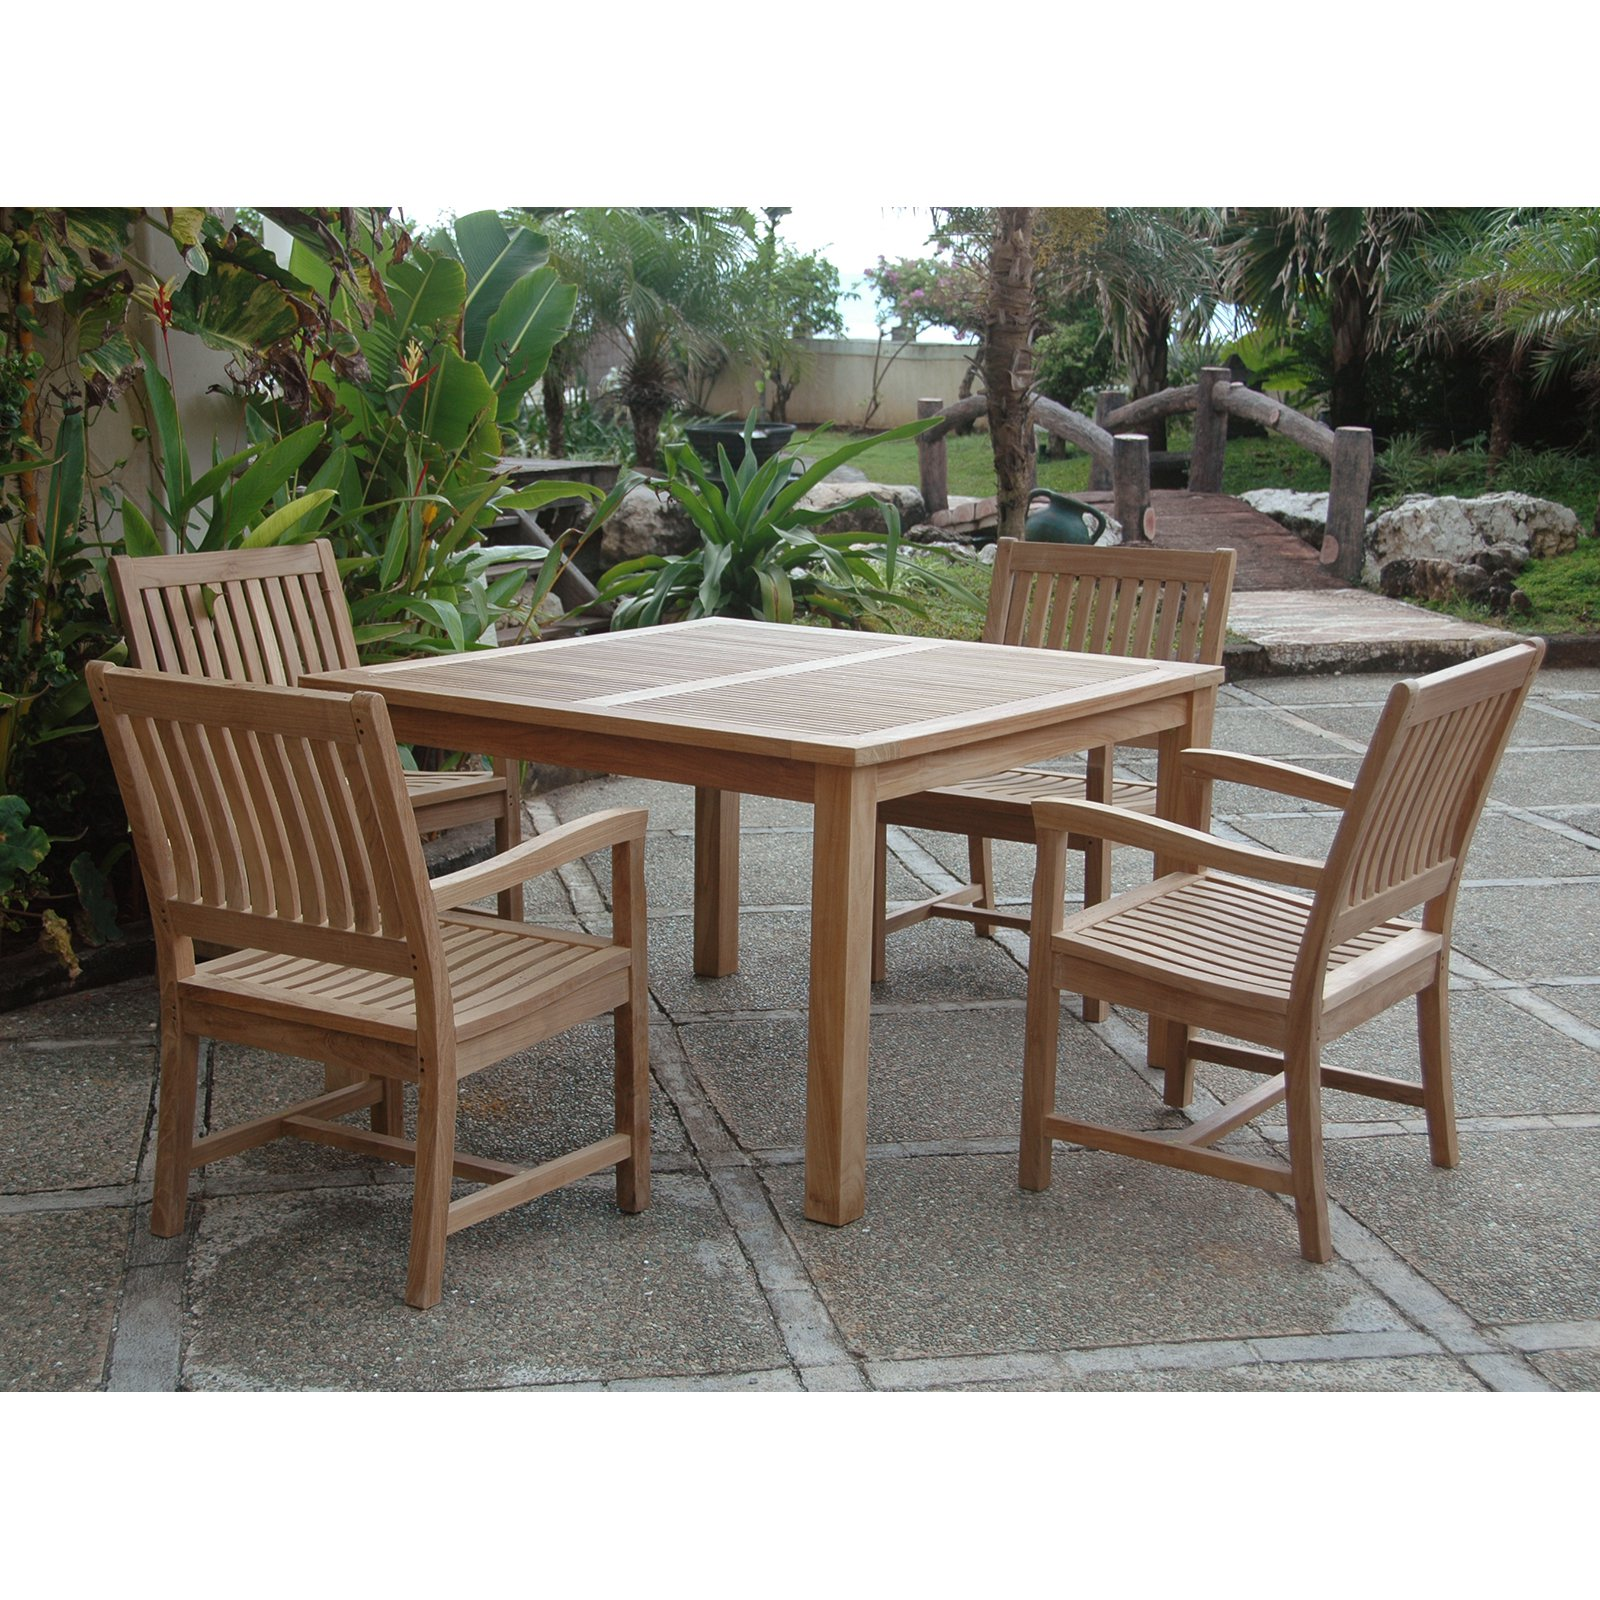 Anderson Teak Rialto 4 Person Teak Patio Dining Set Walmart Com